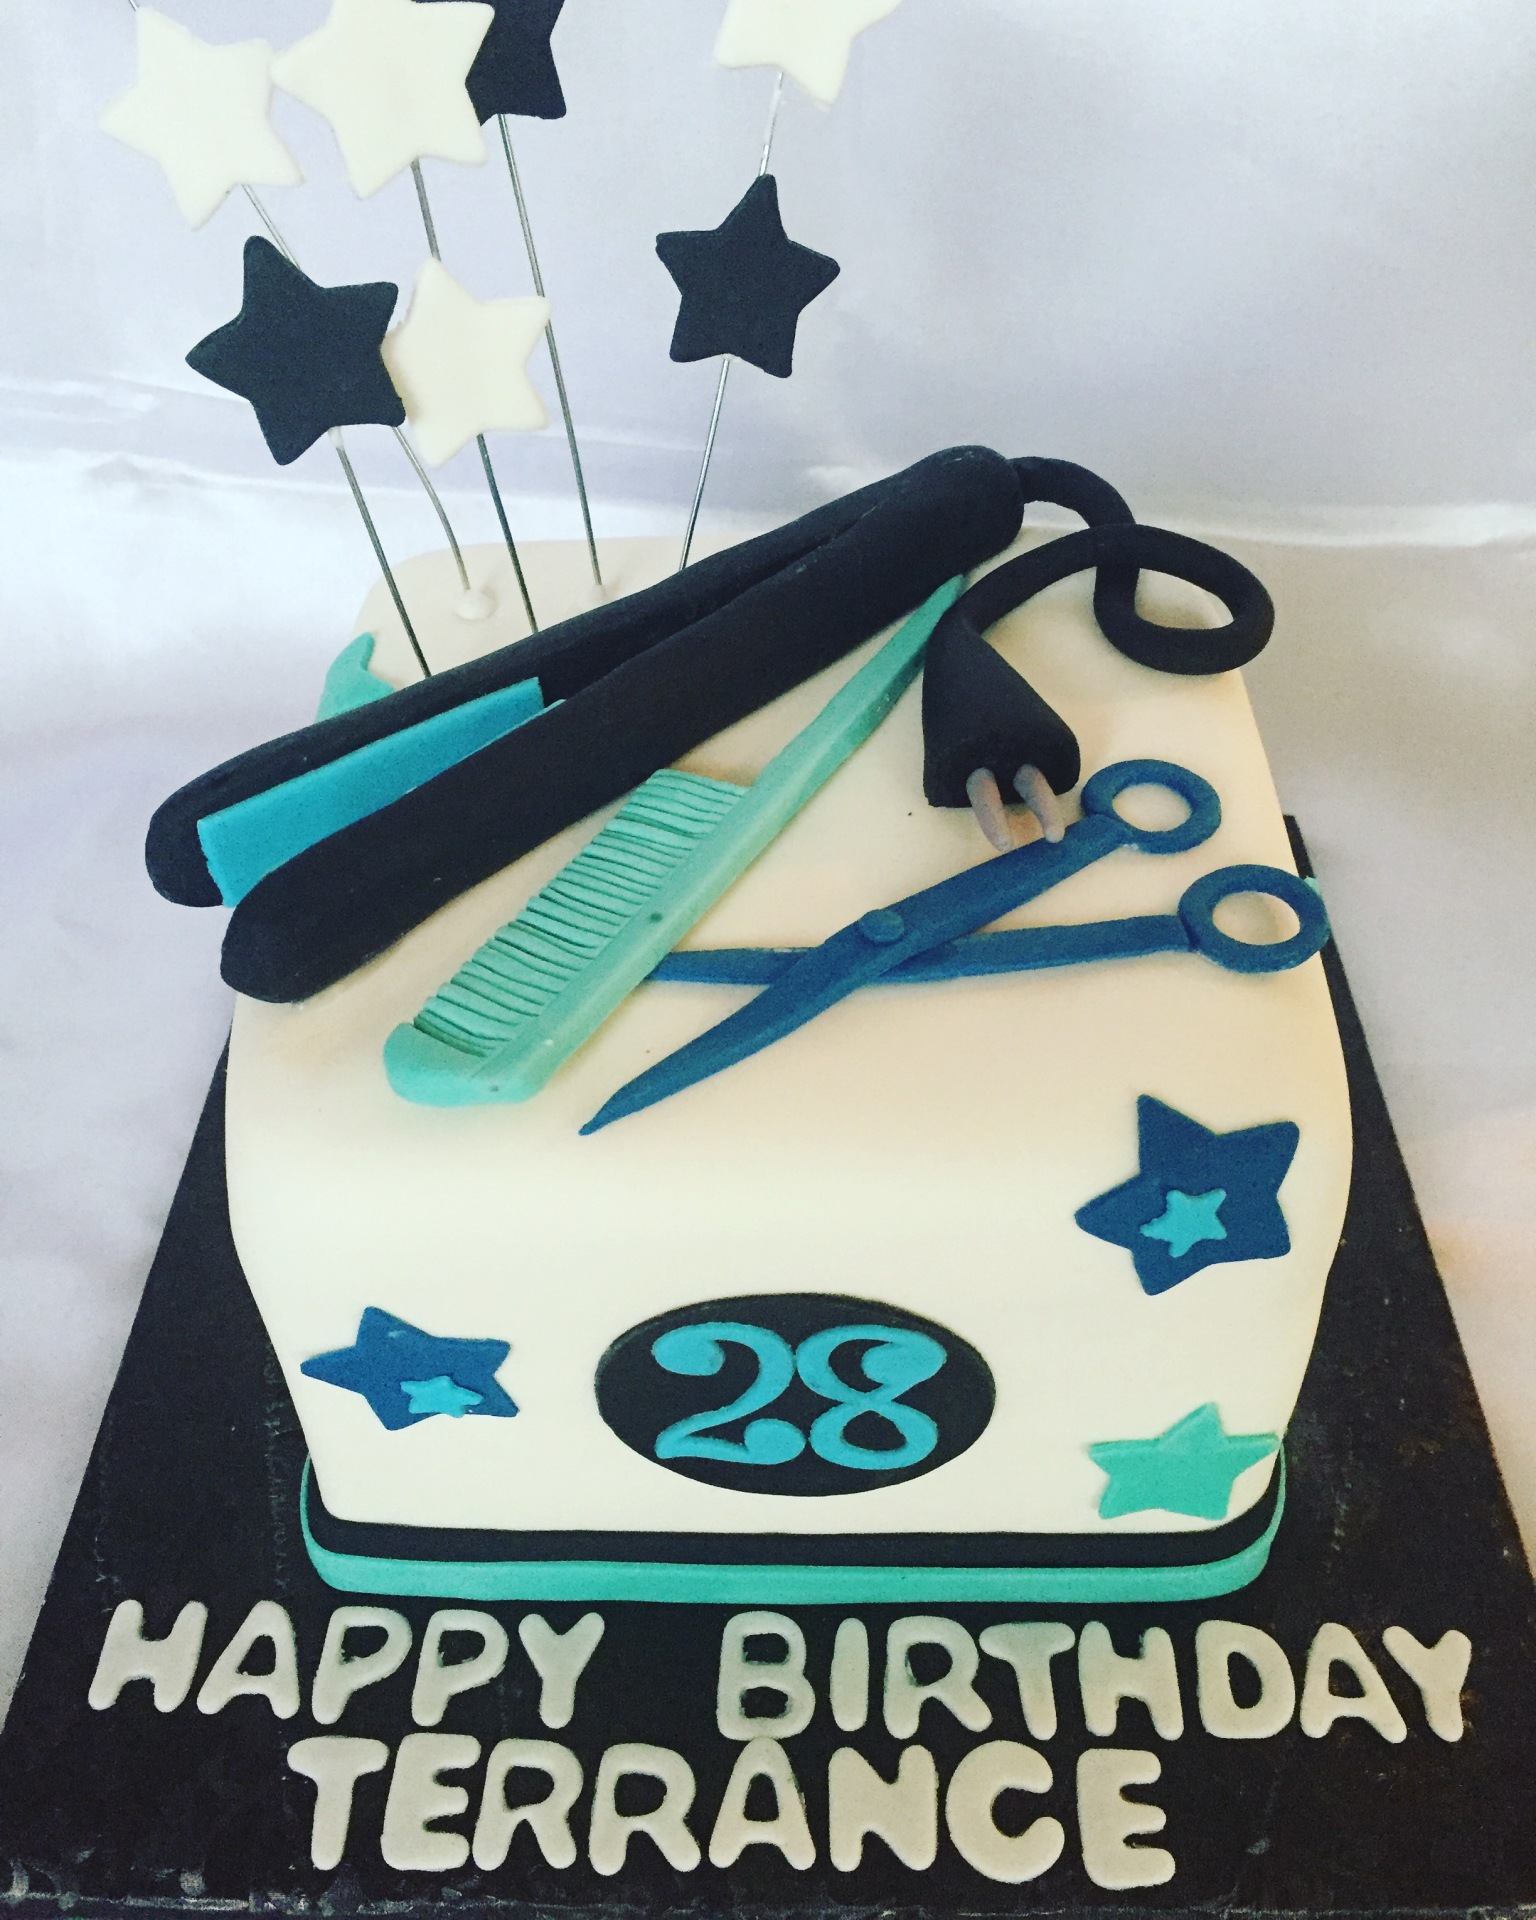 Hair stylist/Barber theme cake